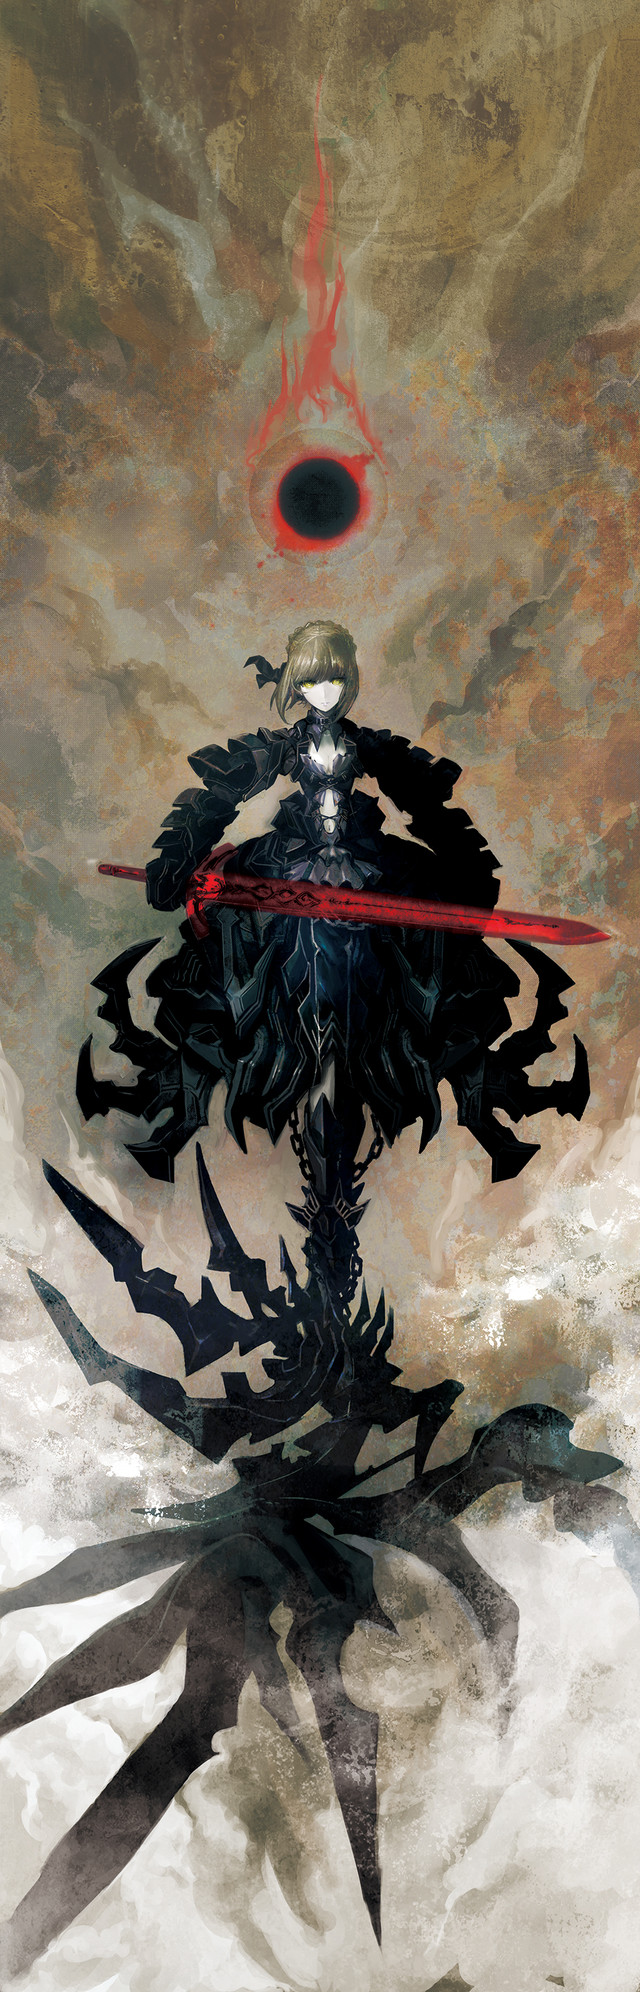 Saber Alter: huke Collaboration Package (Сейбер Fate/stay night) 1/7 Complete figure